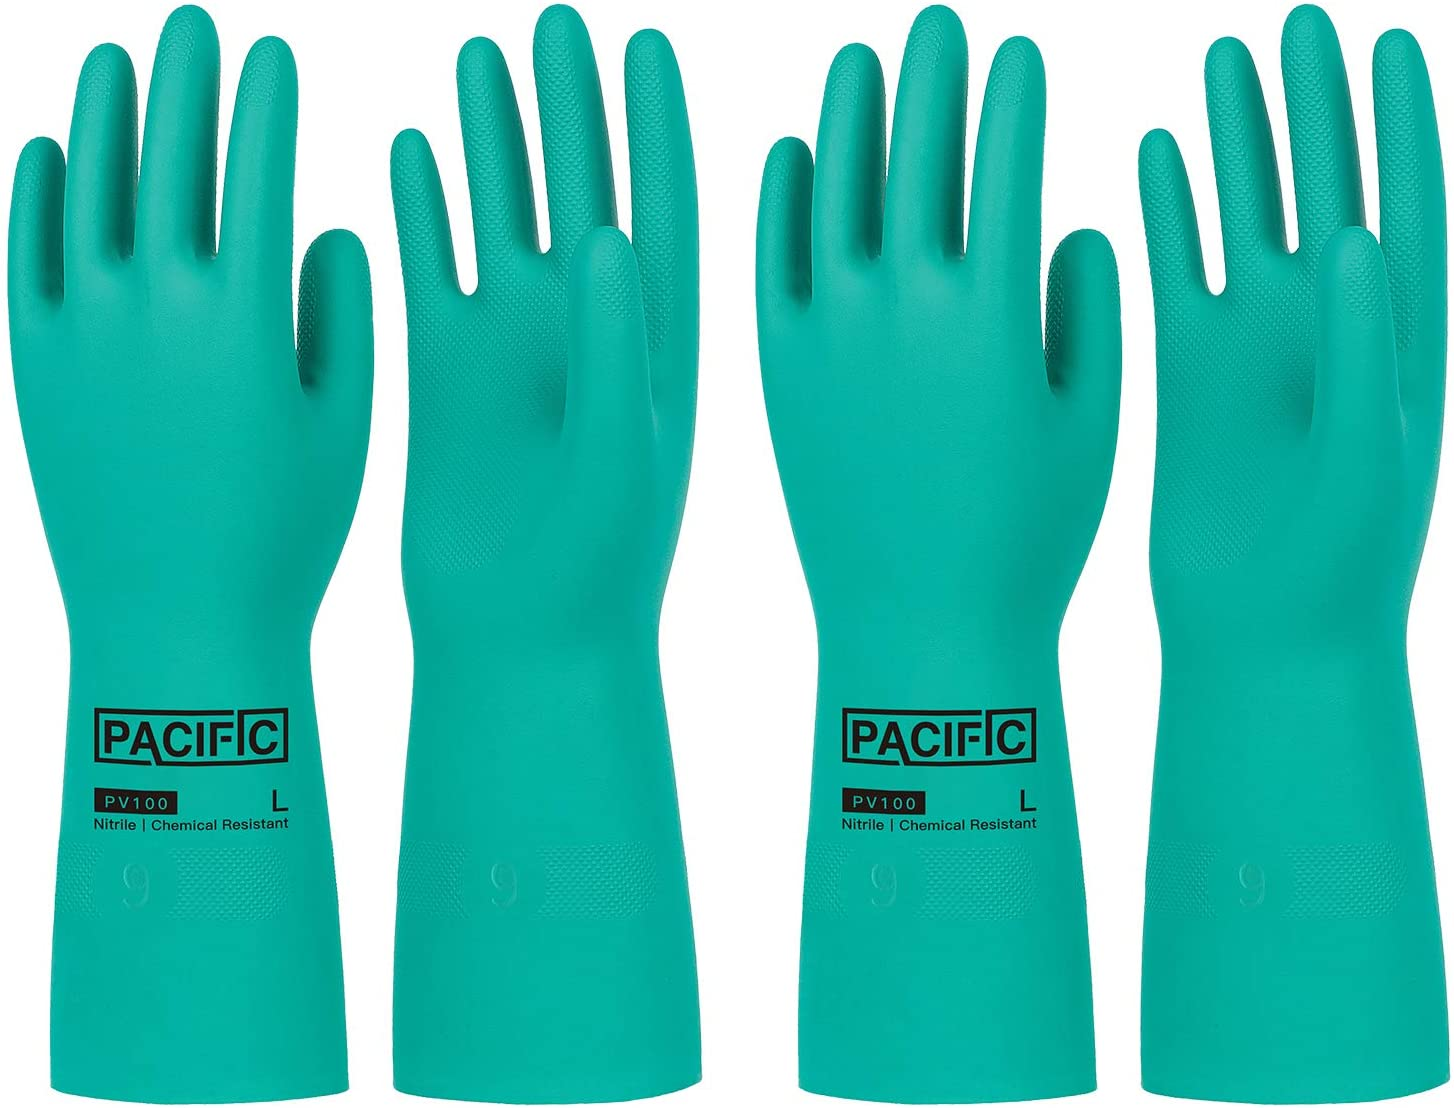 Award PACIFIC PPE 2 Colorado Springs Mall Pairs Nitrile Resistant Flocked Chemical Gloves